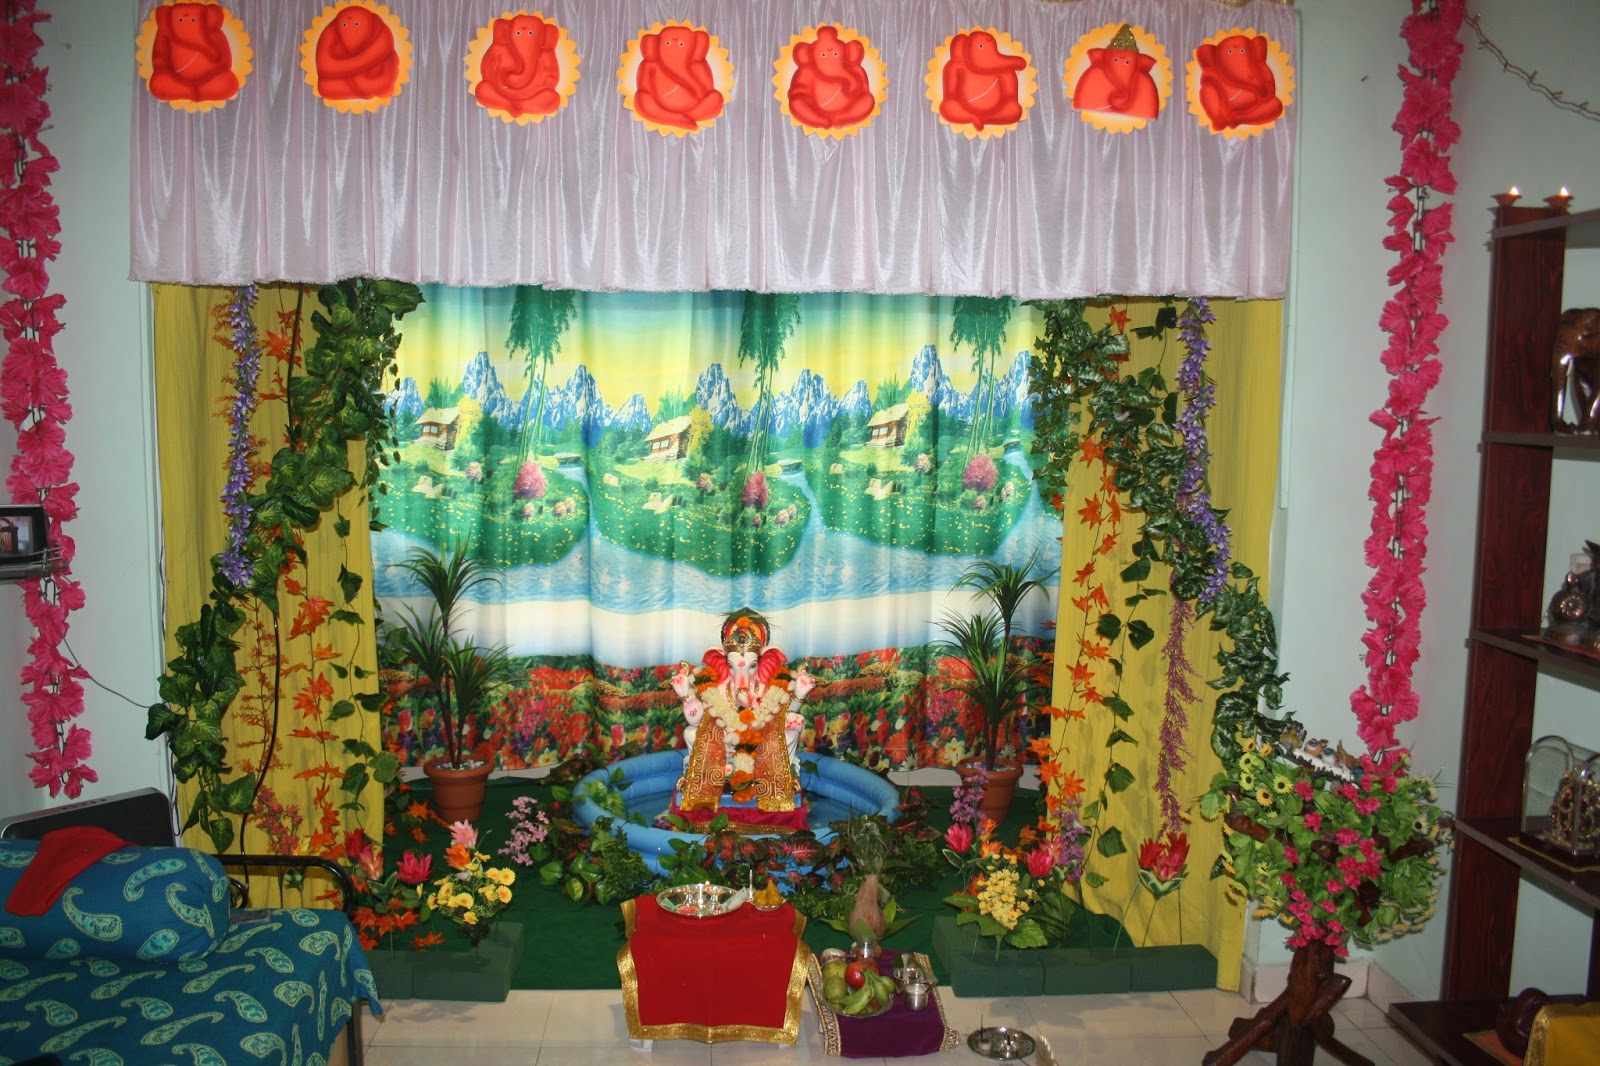 Festival dhamaal ganapati decoration at home for Artificial flower decoration for ganpati